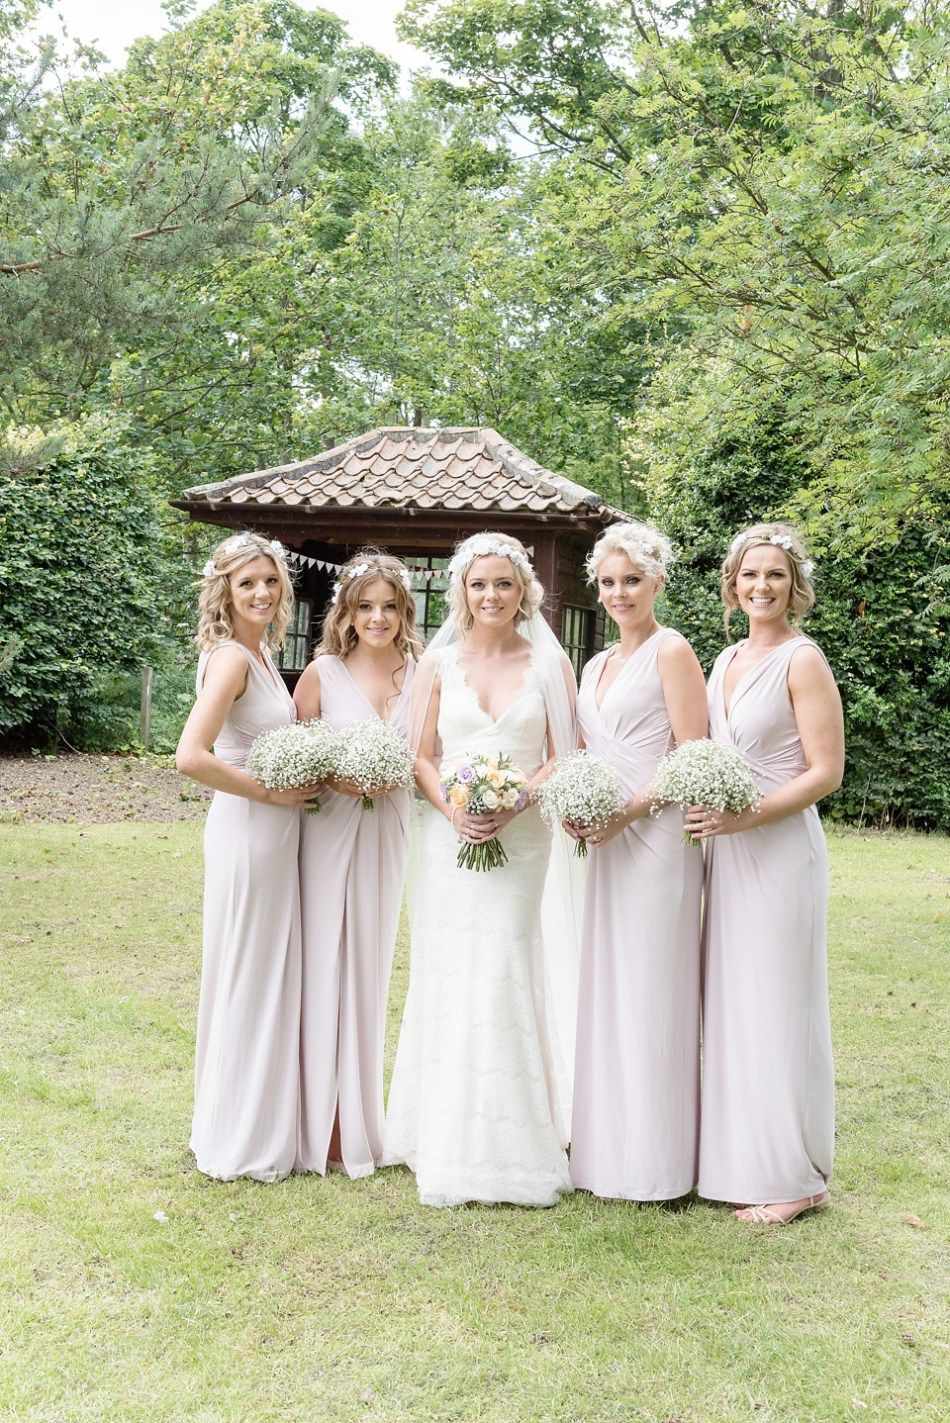 An Essense Of Australia Dress For A Homespun Outdoor Country Wedding In Pretty Pastel Shades Photography By Julie Tinton